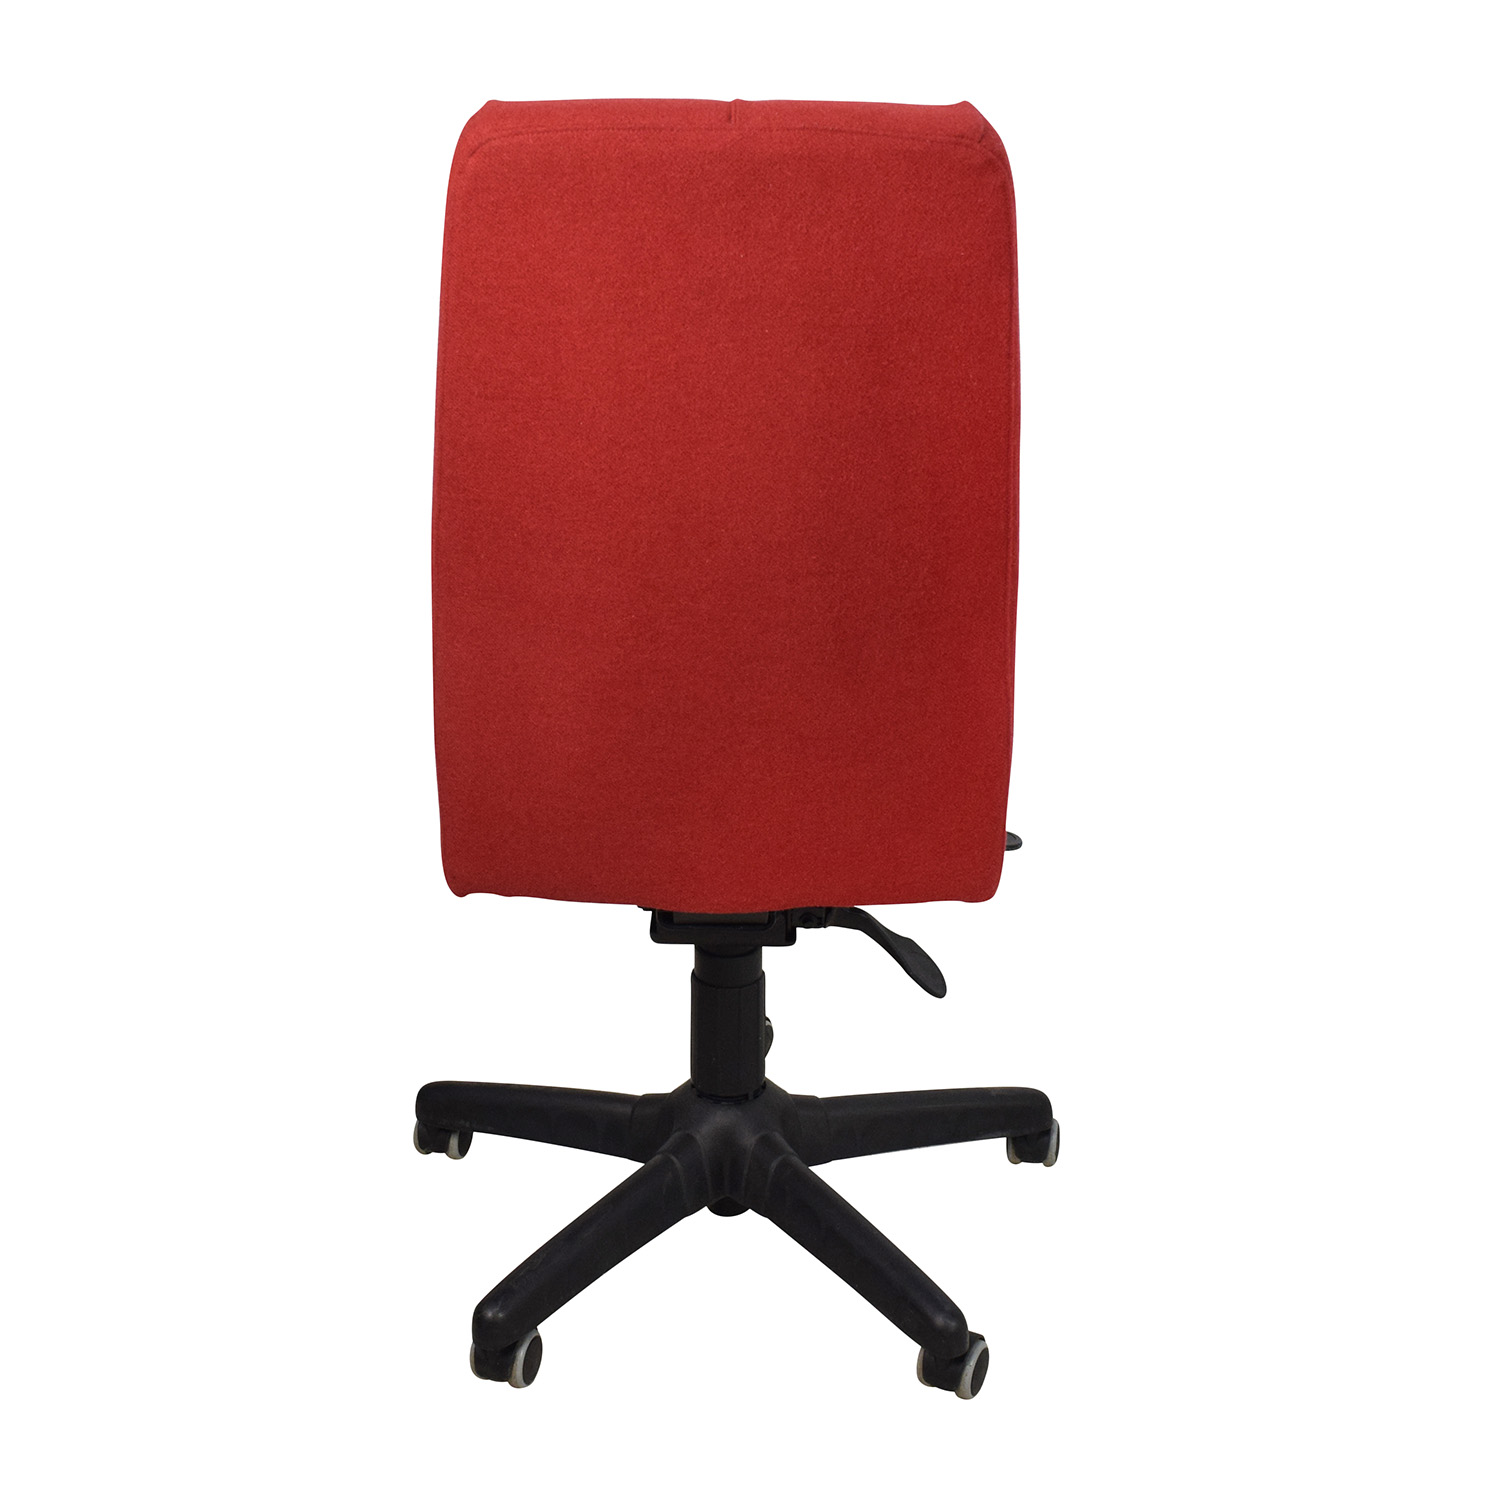 Red Desk Chair Rooms : second hand red armless adjustable home office chair  from rooms.ndoma.org size 1500 x 1500 jpeg 230kB